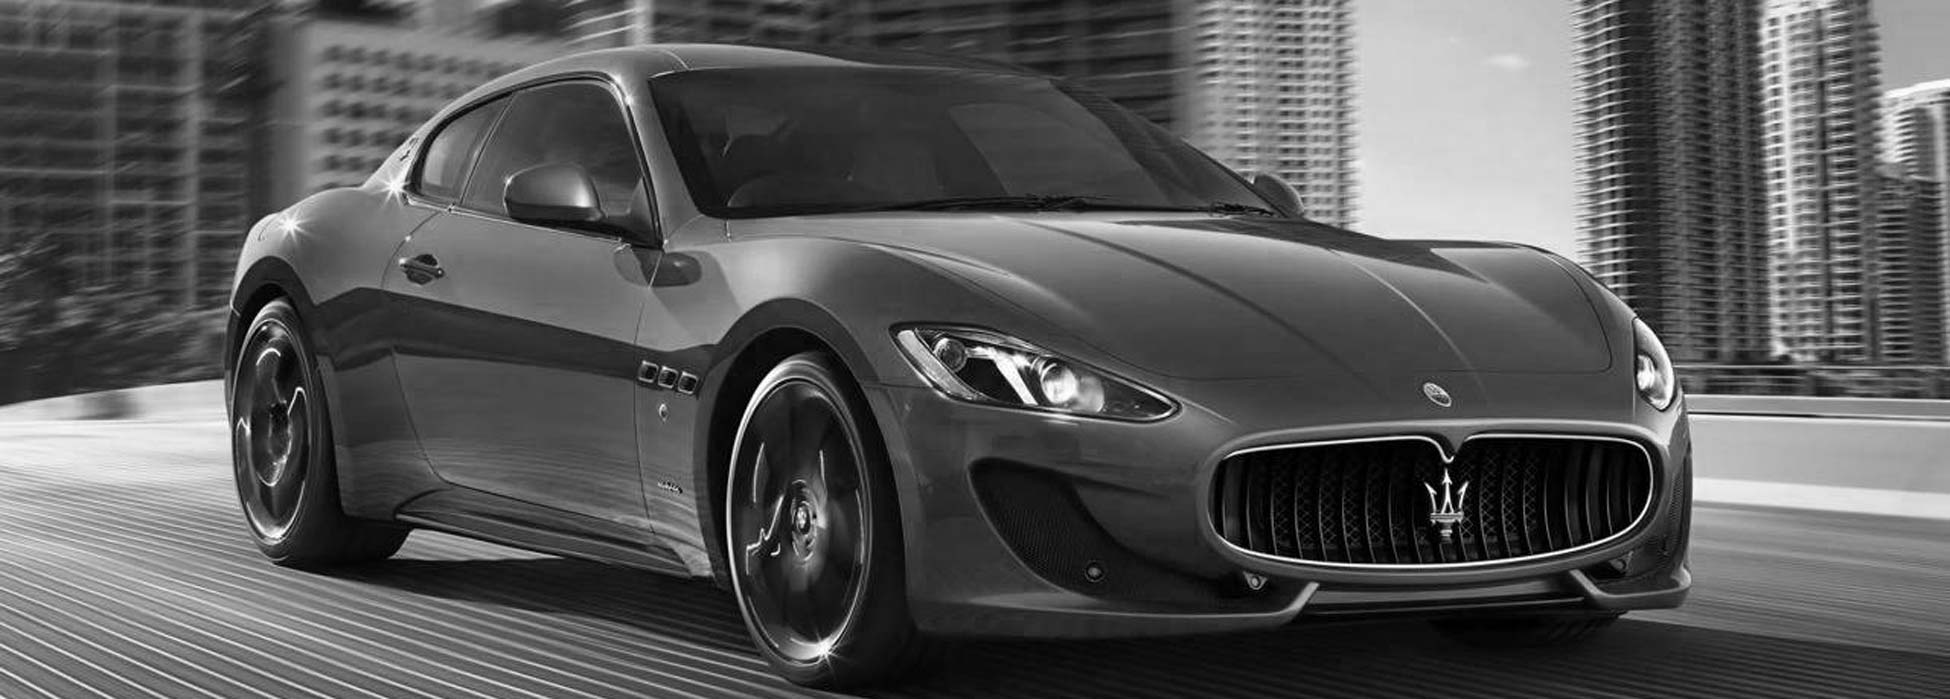 maserati gran turismo sport rental new zealand hire supercars in nz with lcrnz. Black Bedroom Furniture Sets. Home Design Ideas